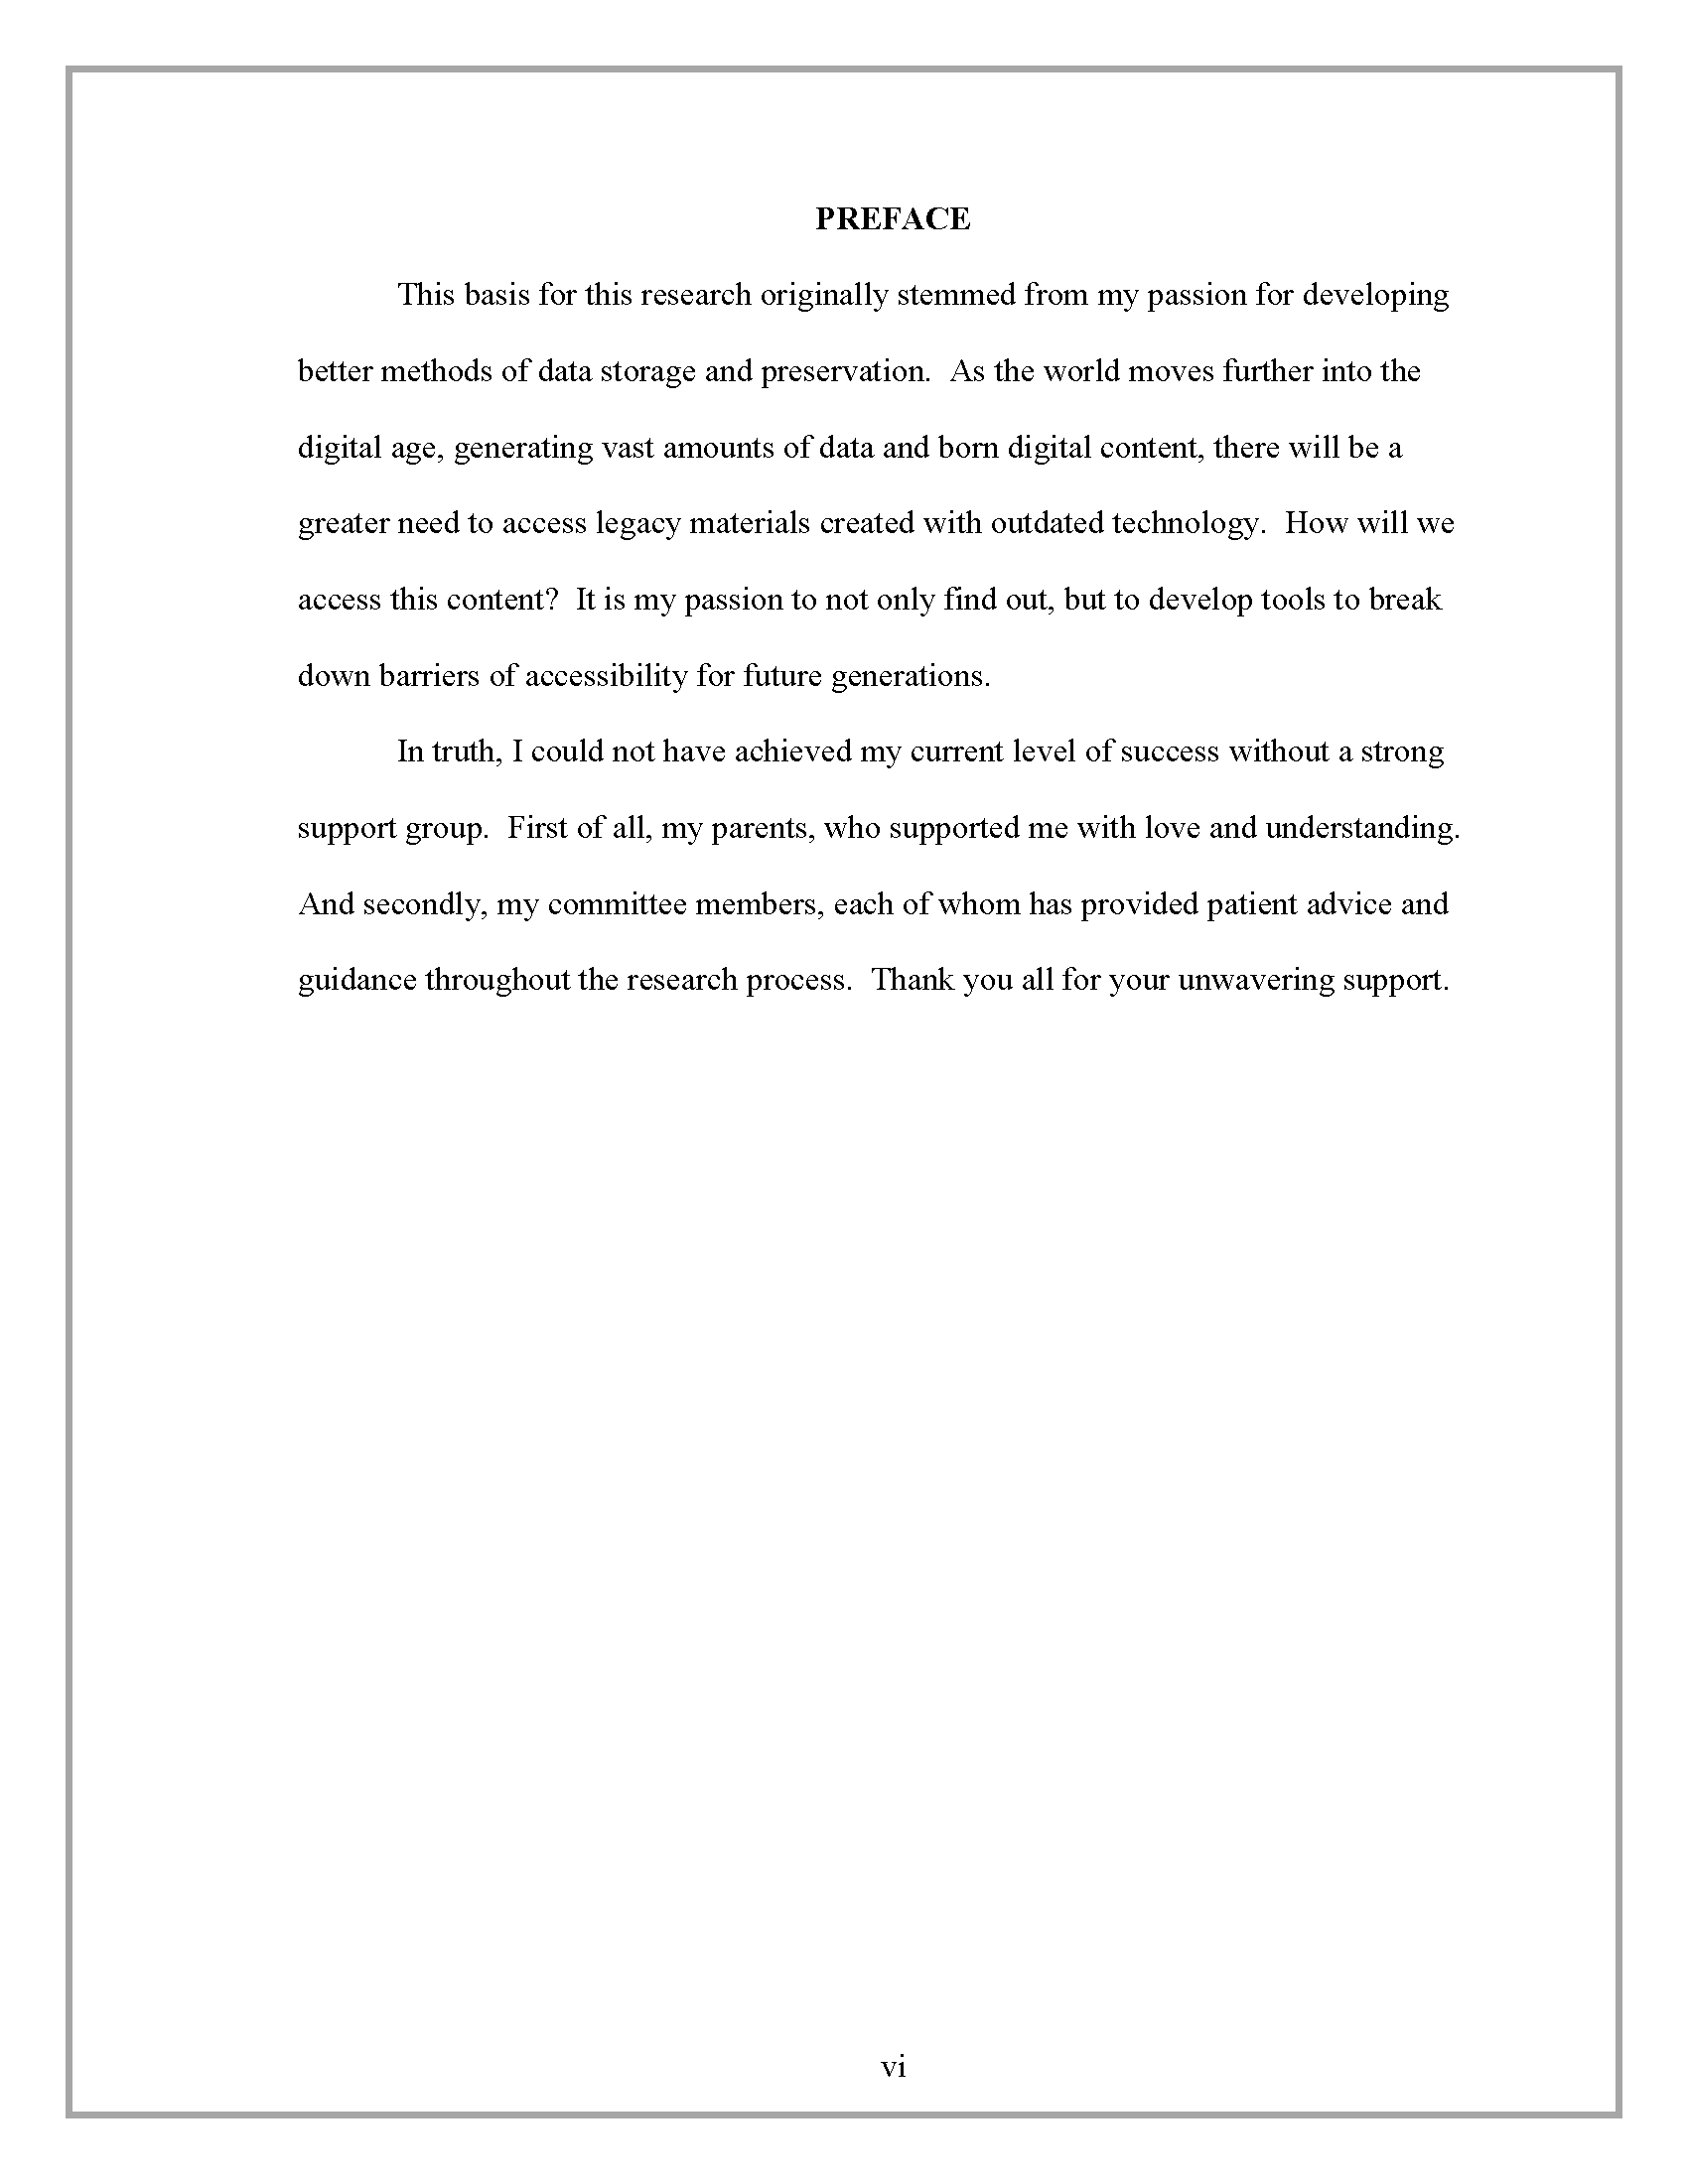 011 Research Paper Preface Border How To Write Thesis For Fantastic A History Full